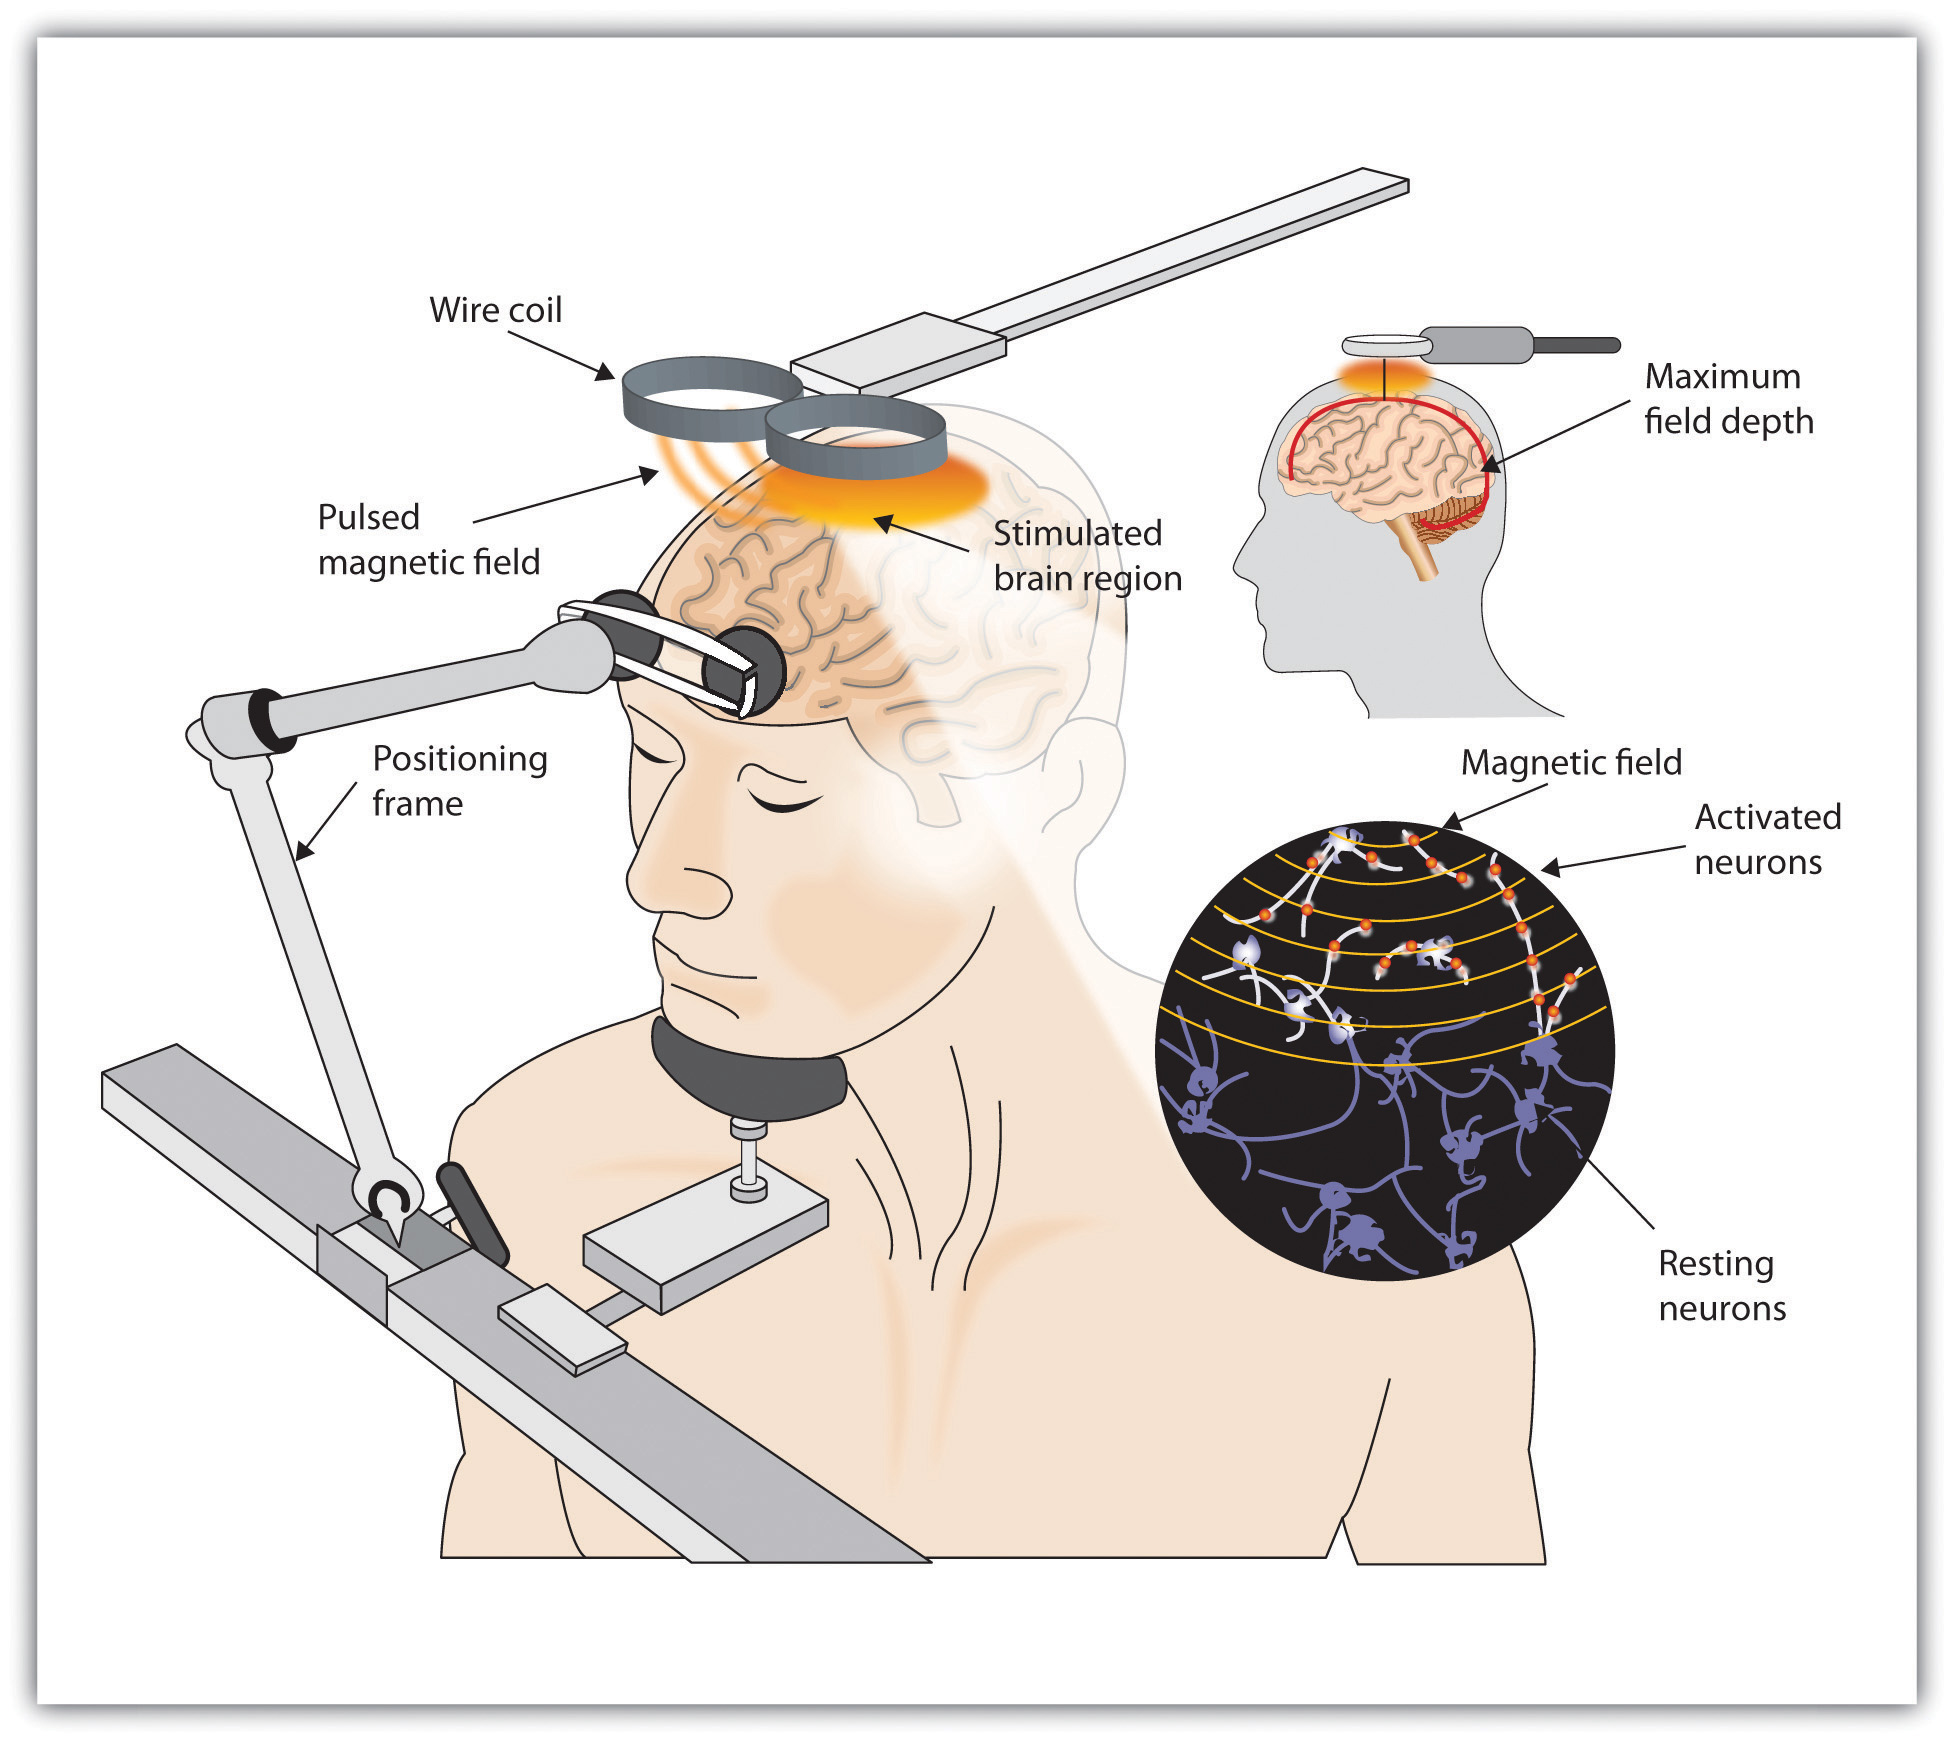 transcranial magnetic stimulation tms for depression Repetitive transcranial magnetic stimulation (rtms) therapy delivers pulses of an mri-strength magnetic field from a coil placed over the scalp.